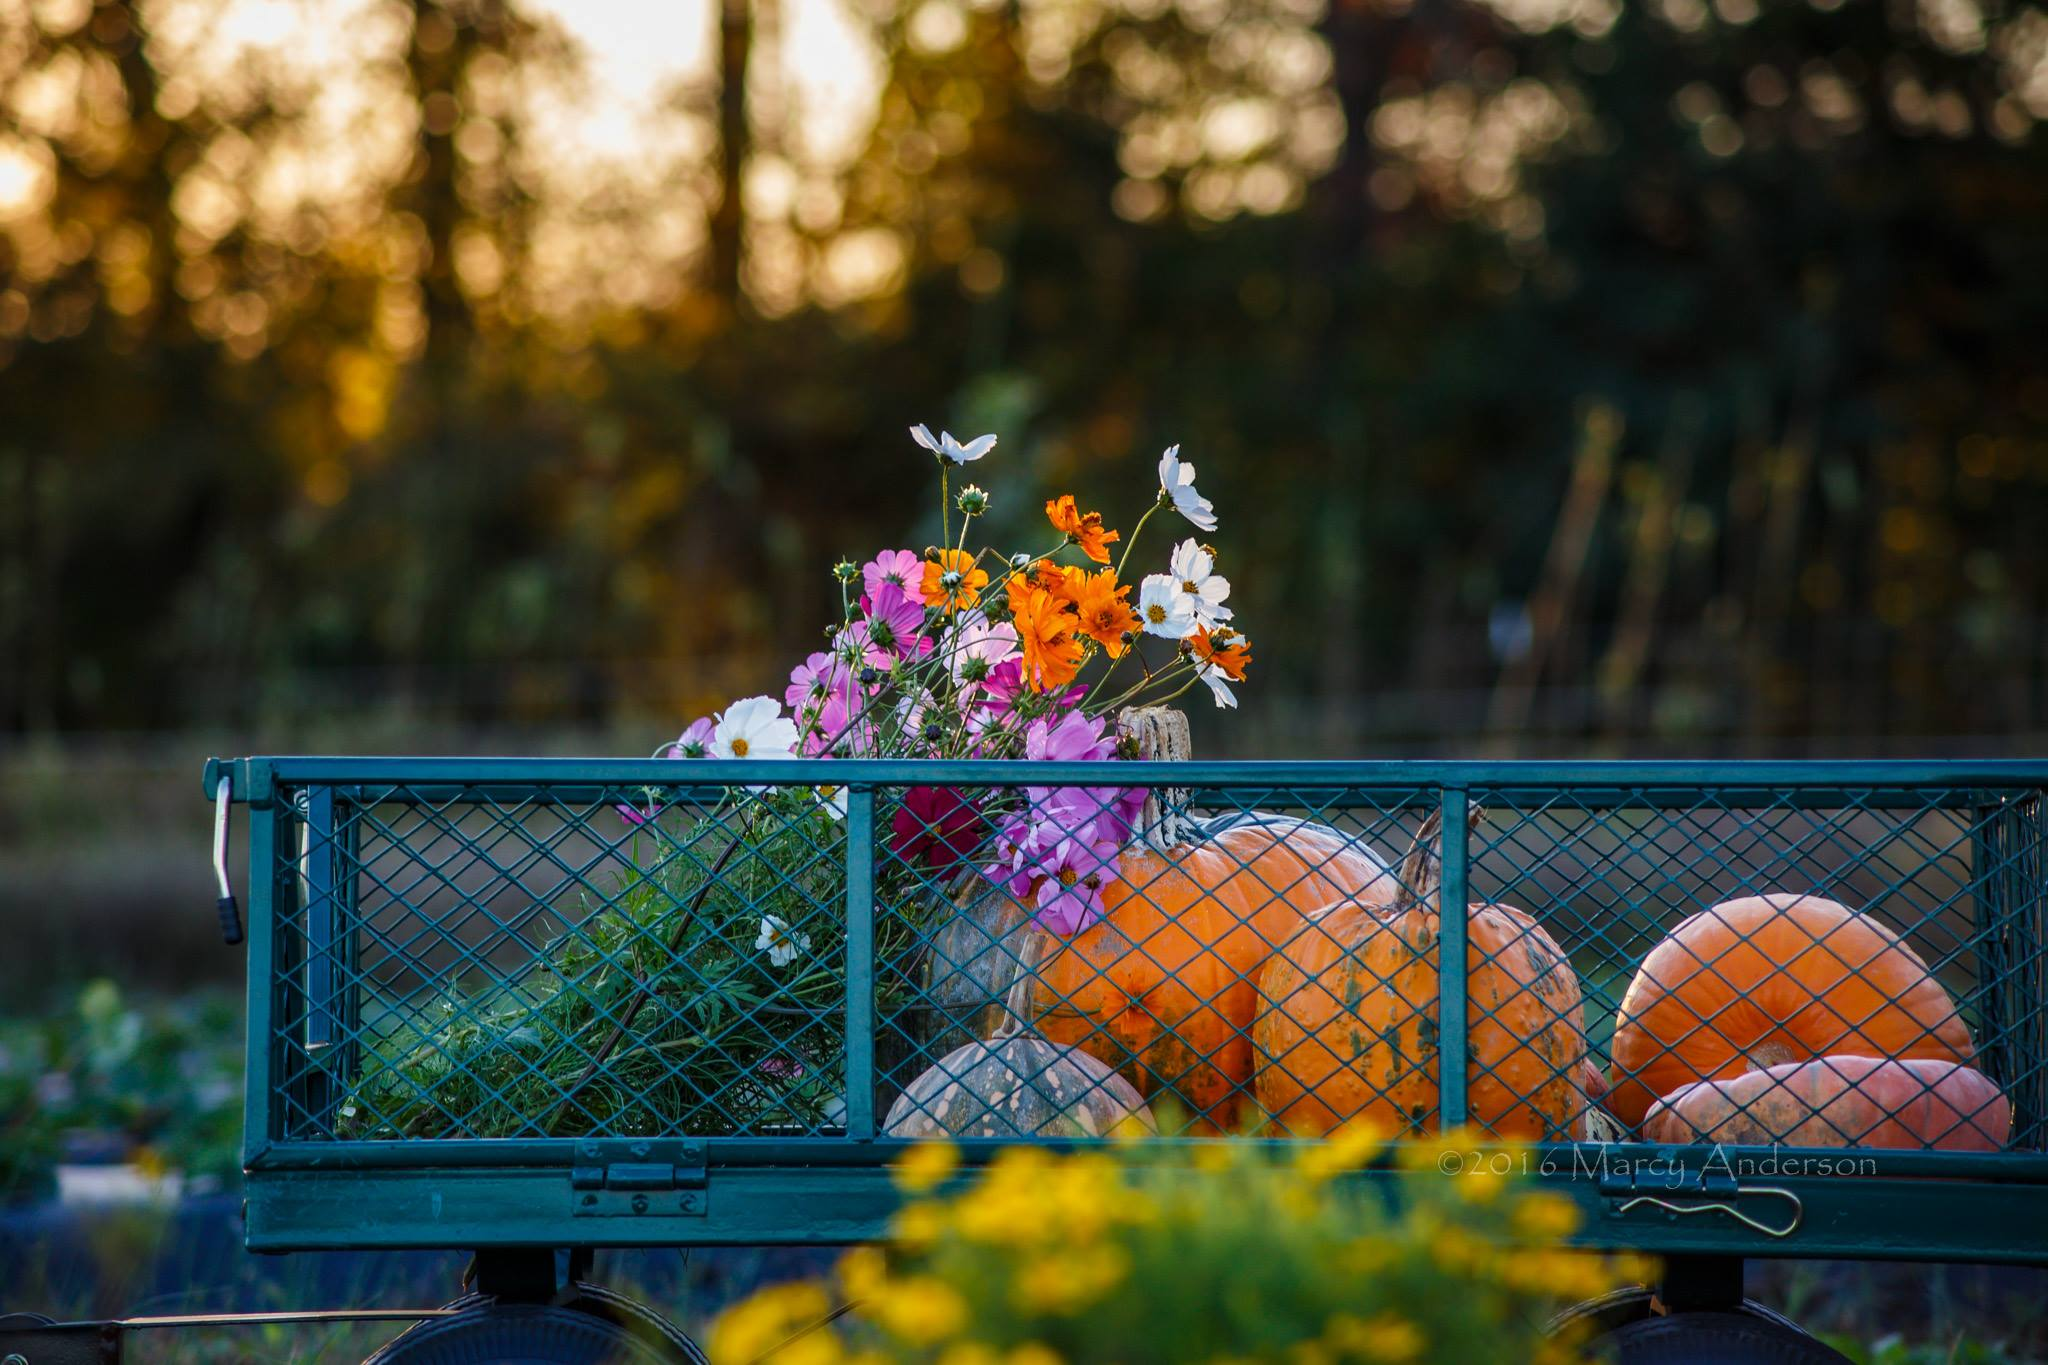 fall festival pumpkins and flowers